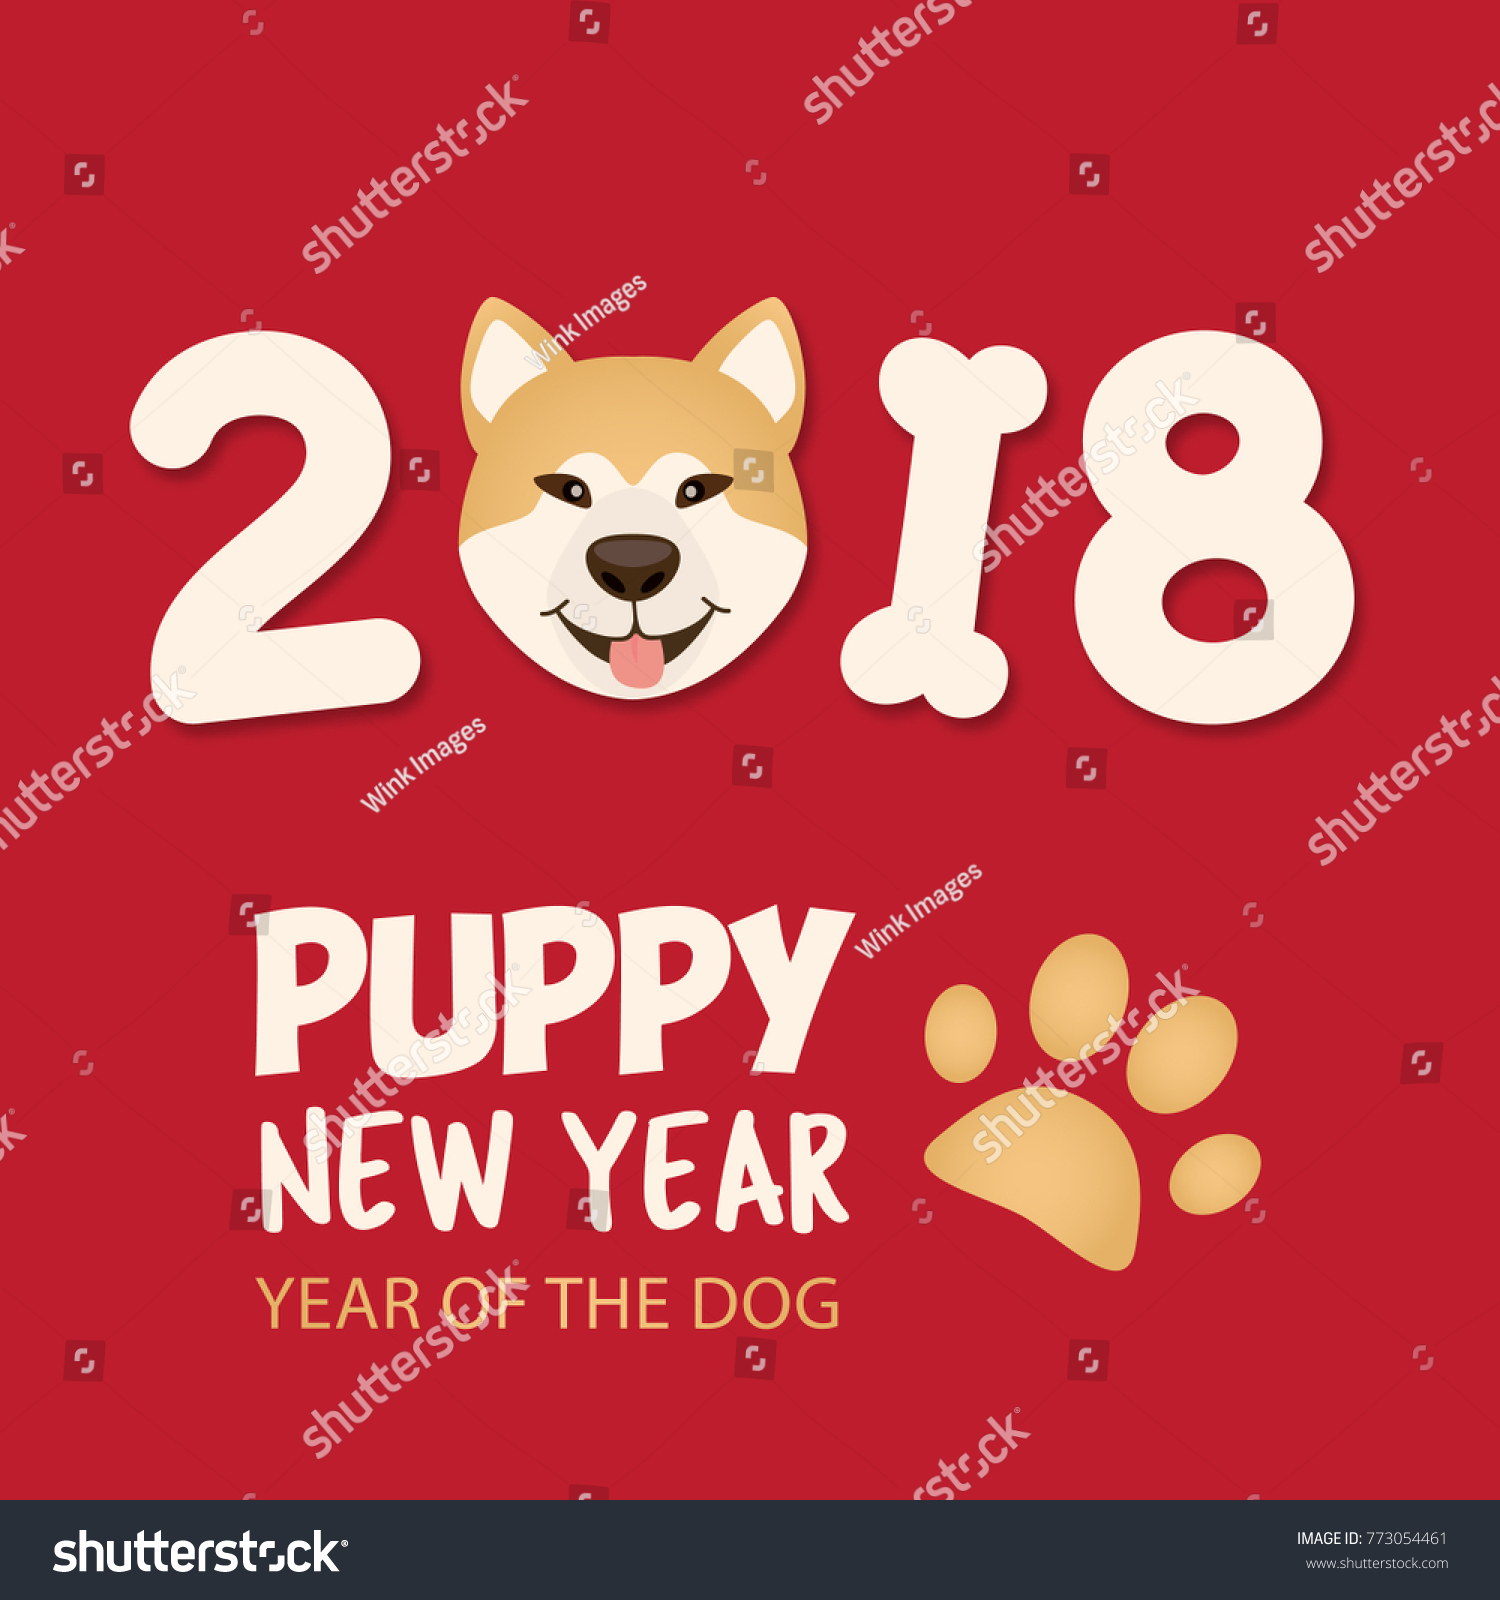 year of the dog 2018 puppy new year chinese happy new year design - Chinese Happy New Year